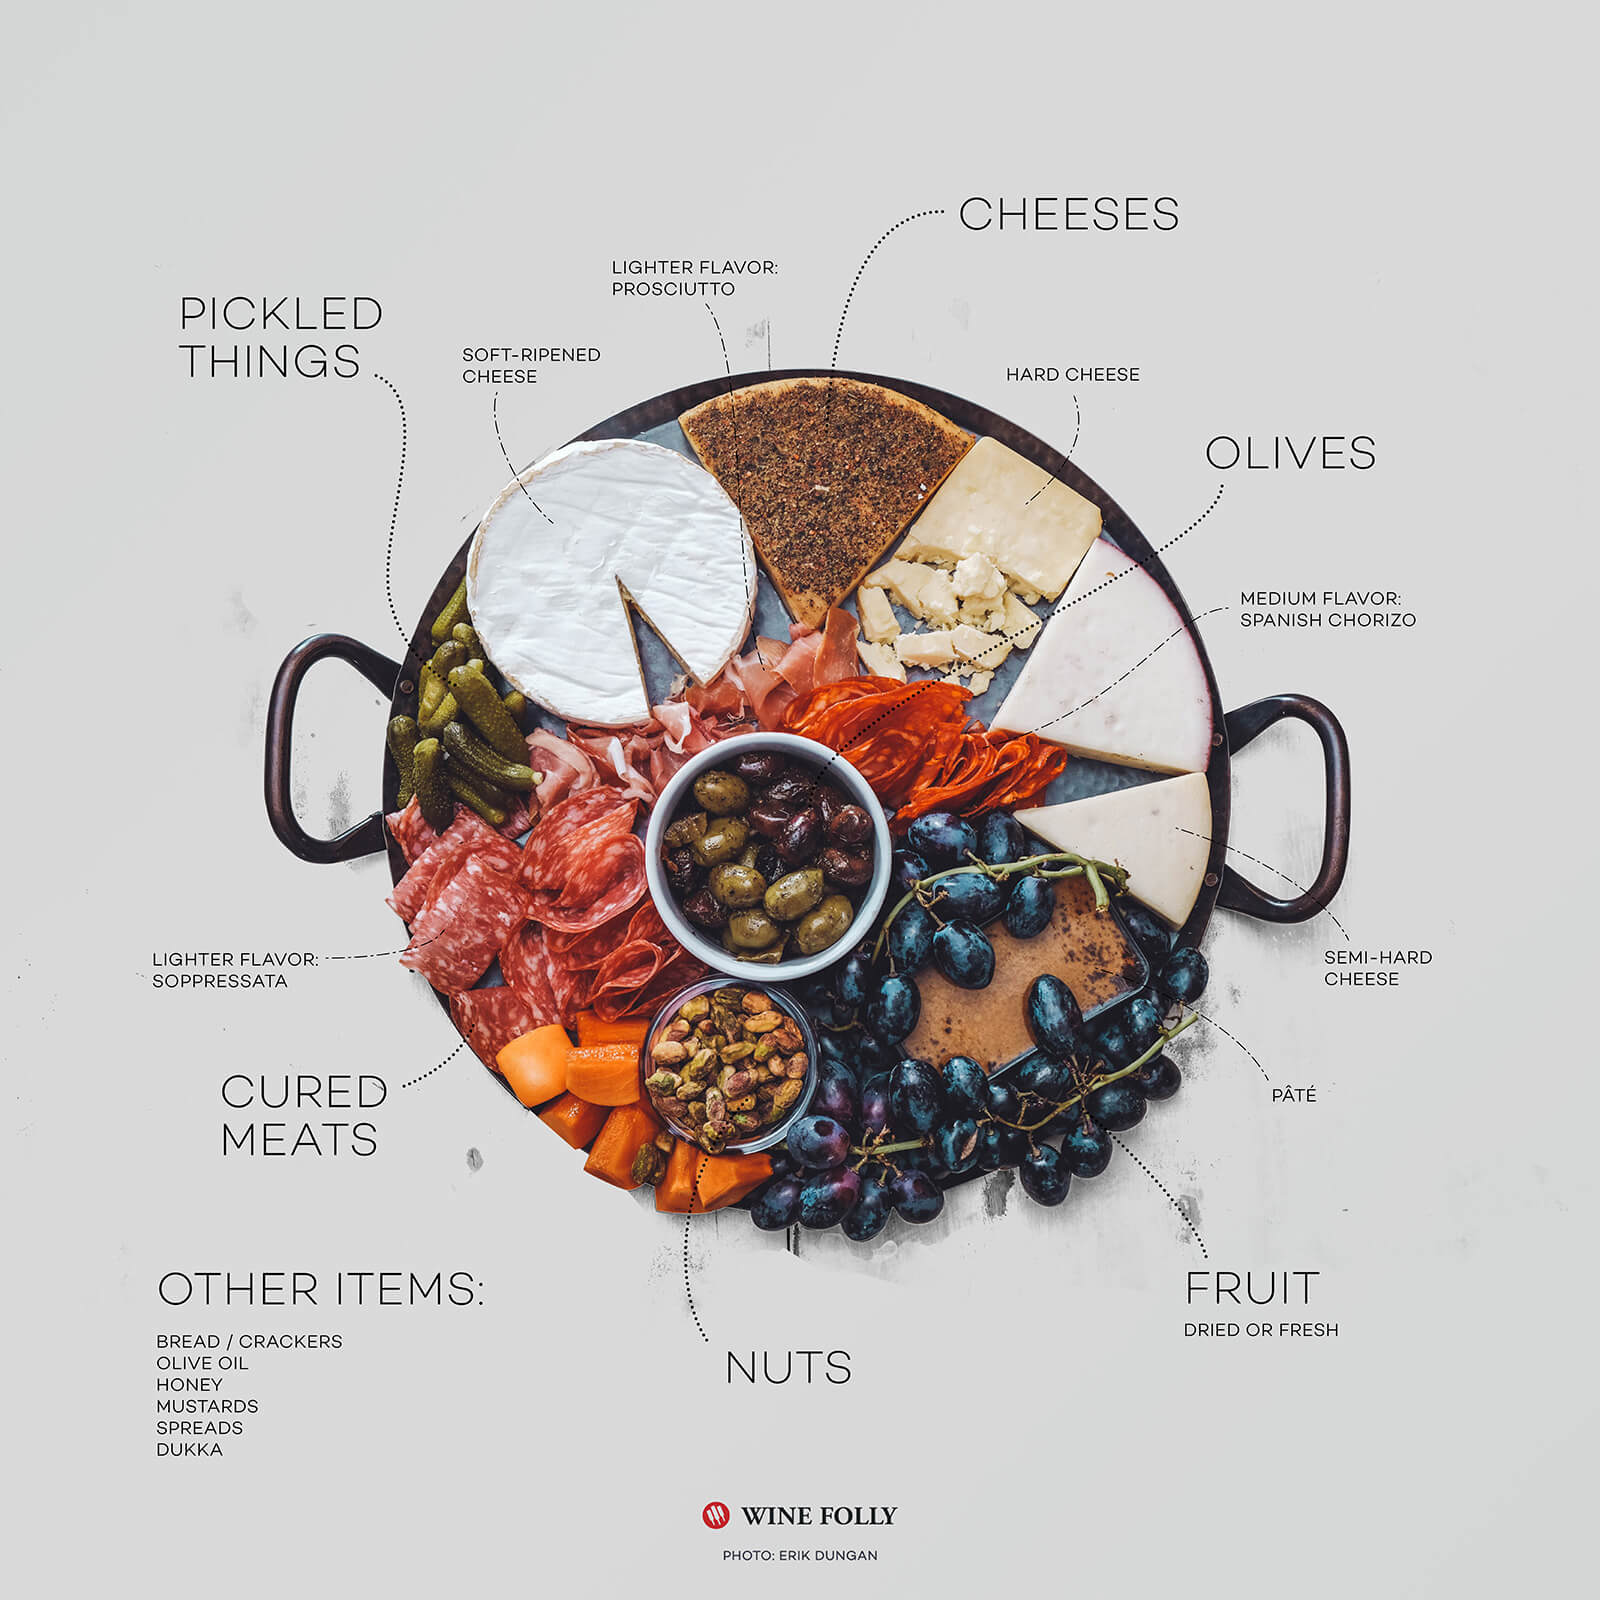 Anatomy of a charcuterie and cheese board. Original photo by Erik Dungan